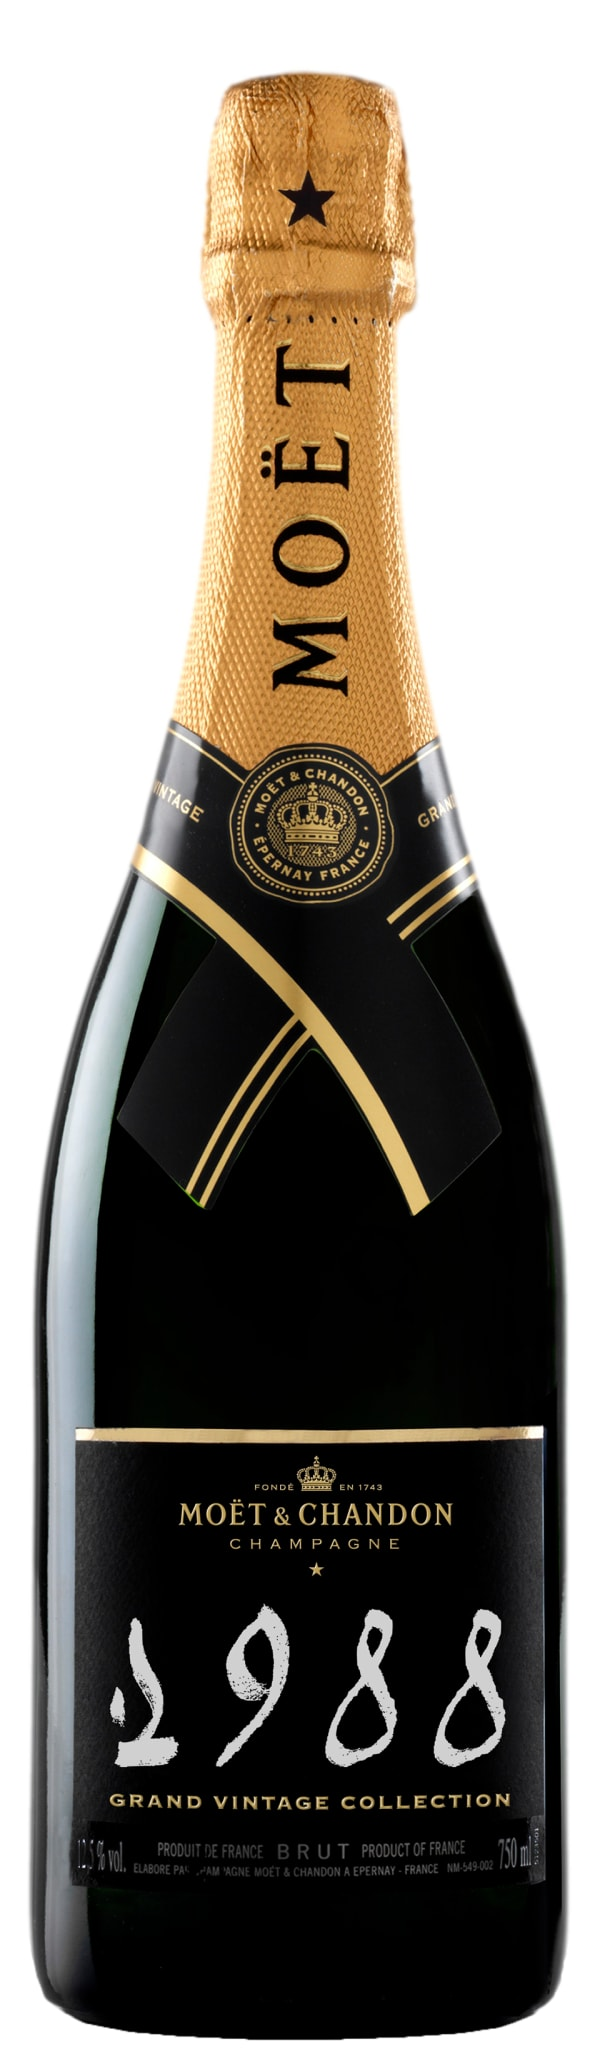 Moët & Chandon Grand Vintage Collection Champagne Brut 1988